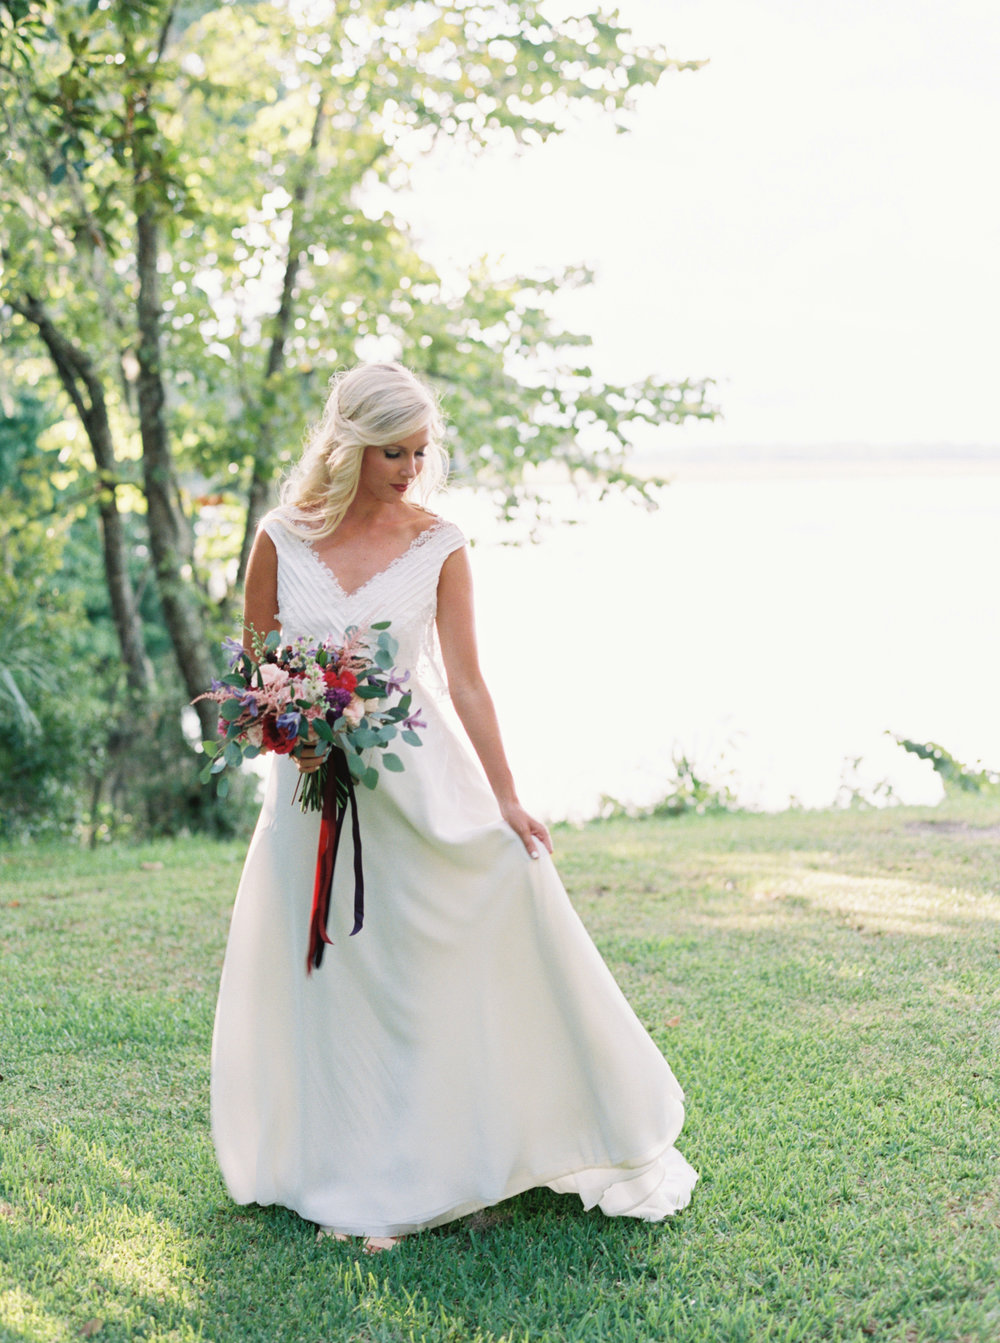 EmilyAnnHughesPhotography_Elopement-026.jpg